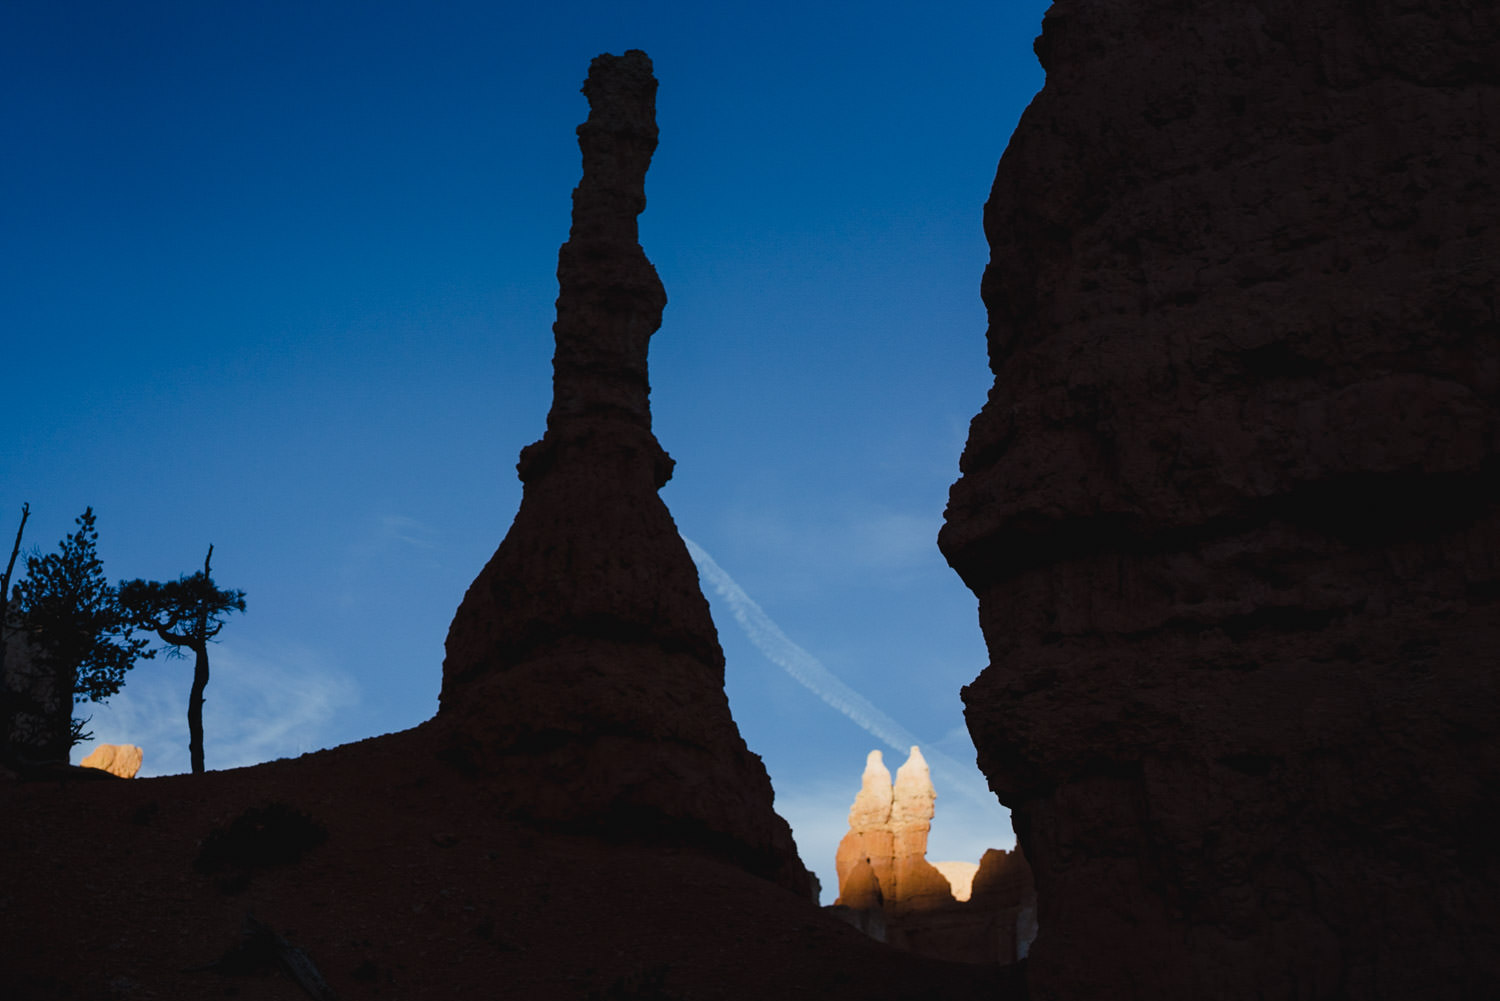 Bryce Canyon elopement rock tower silhouette against blue sky photo